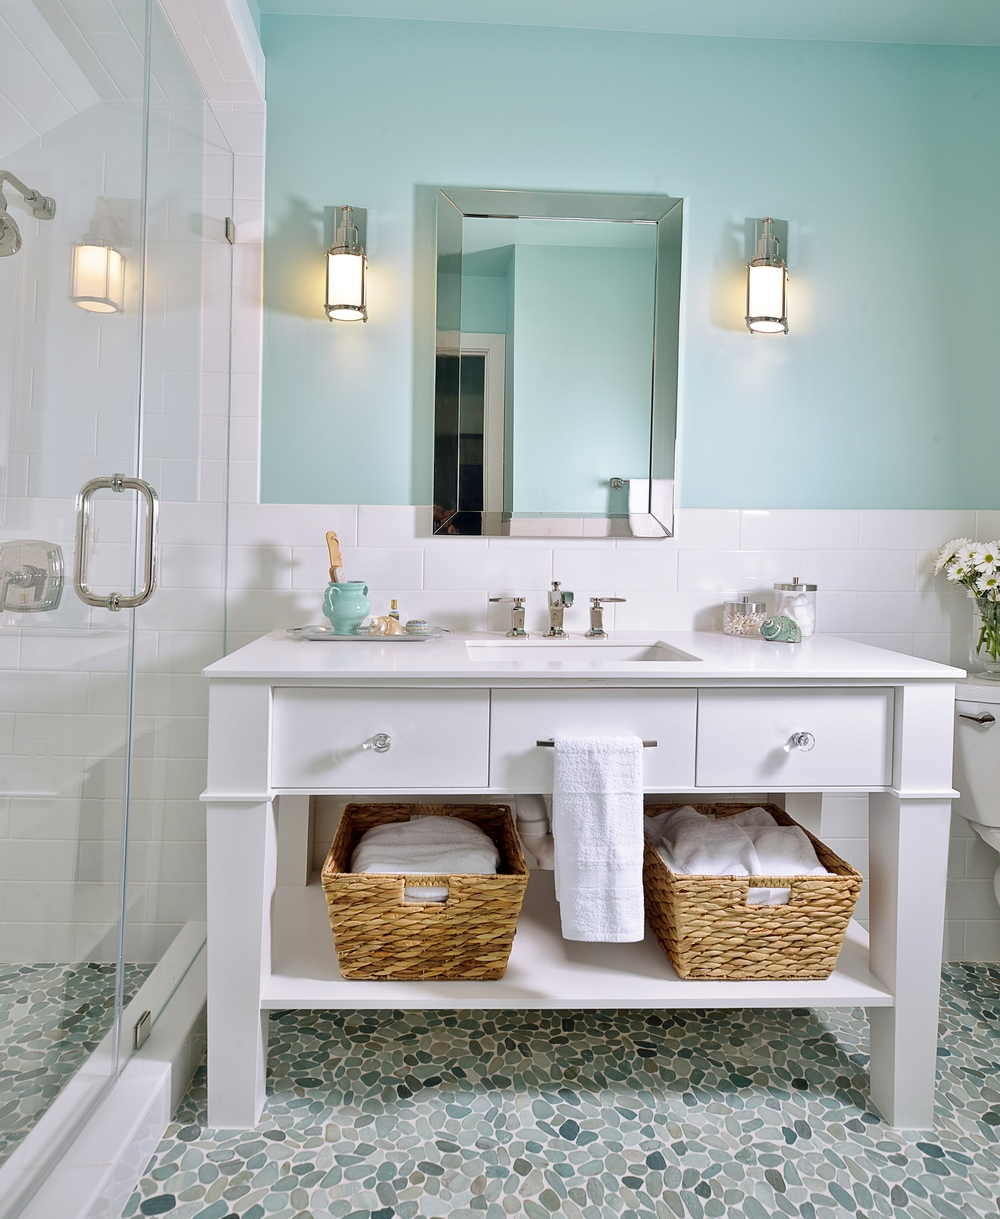 Tiffany blue girl bathroom remodel,  Designer: Carla Aston